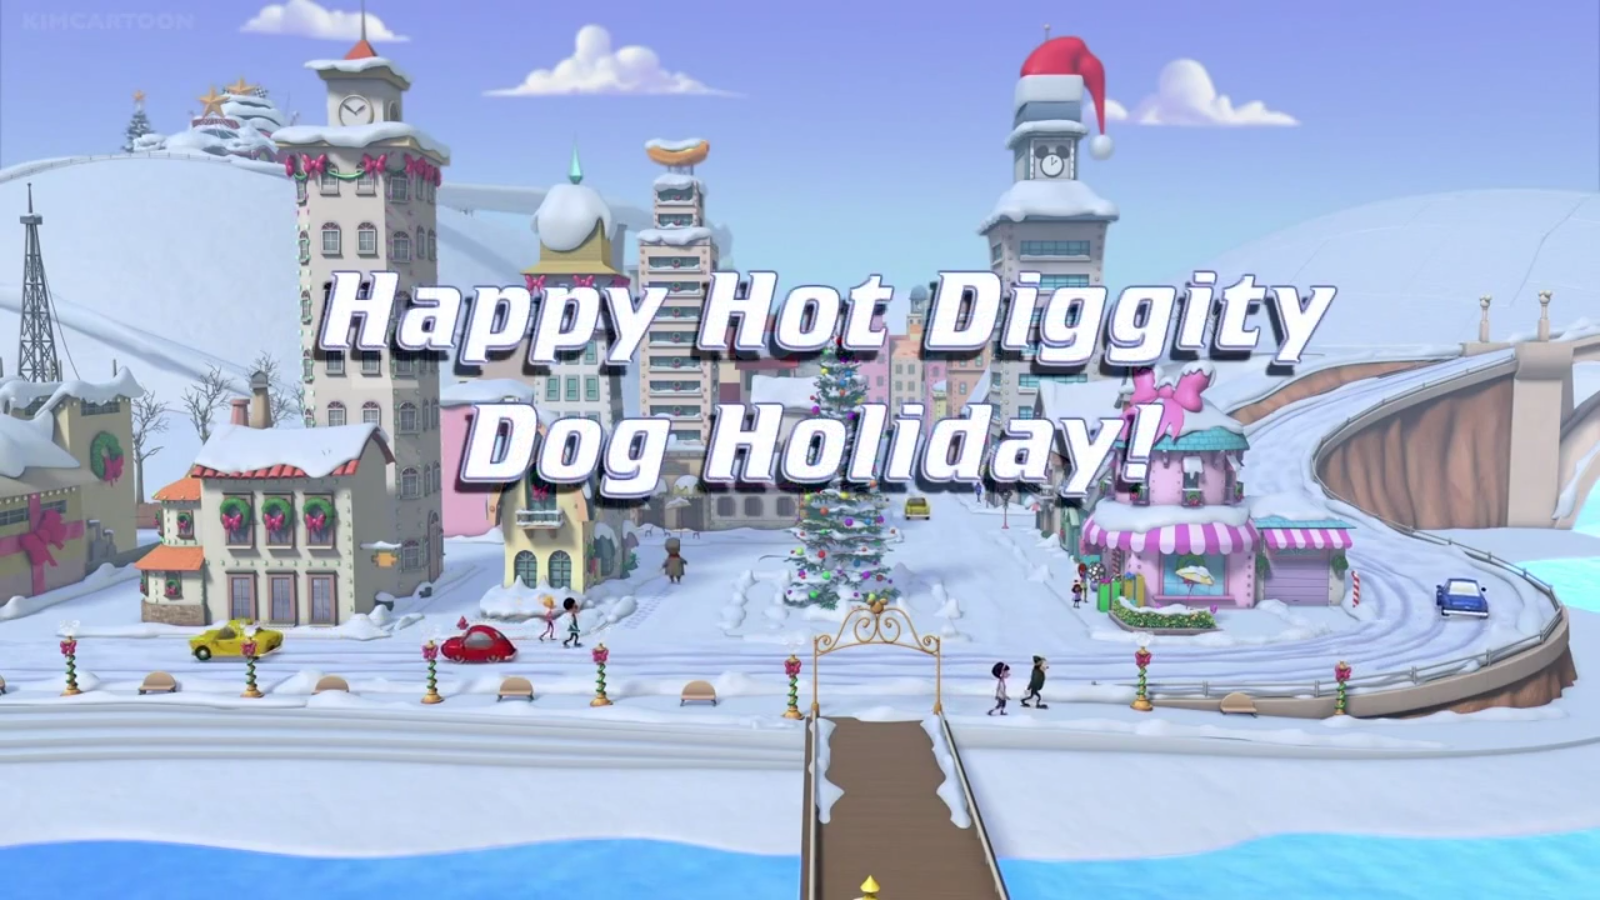 Happy Hot Diggity Dog Holiday!